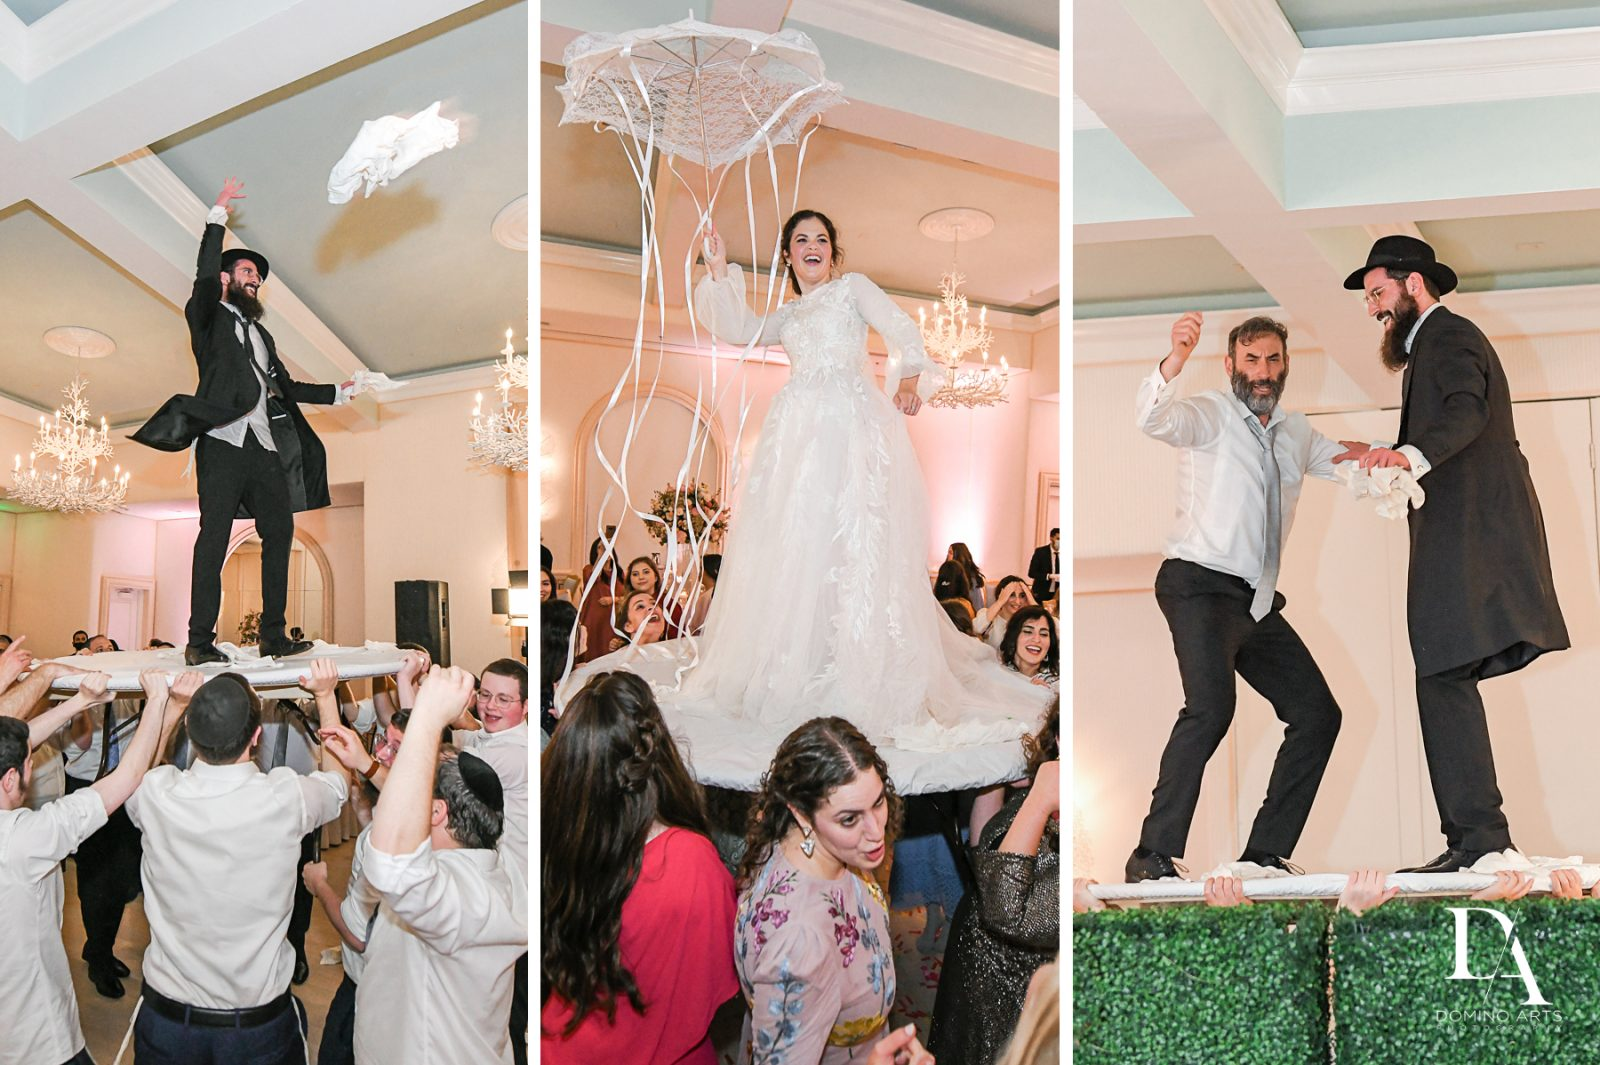 Best Wedding props for Jewish Orthodox Wedding in Palm Beach by Domino Arts Photography